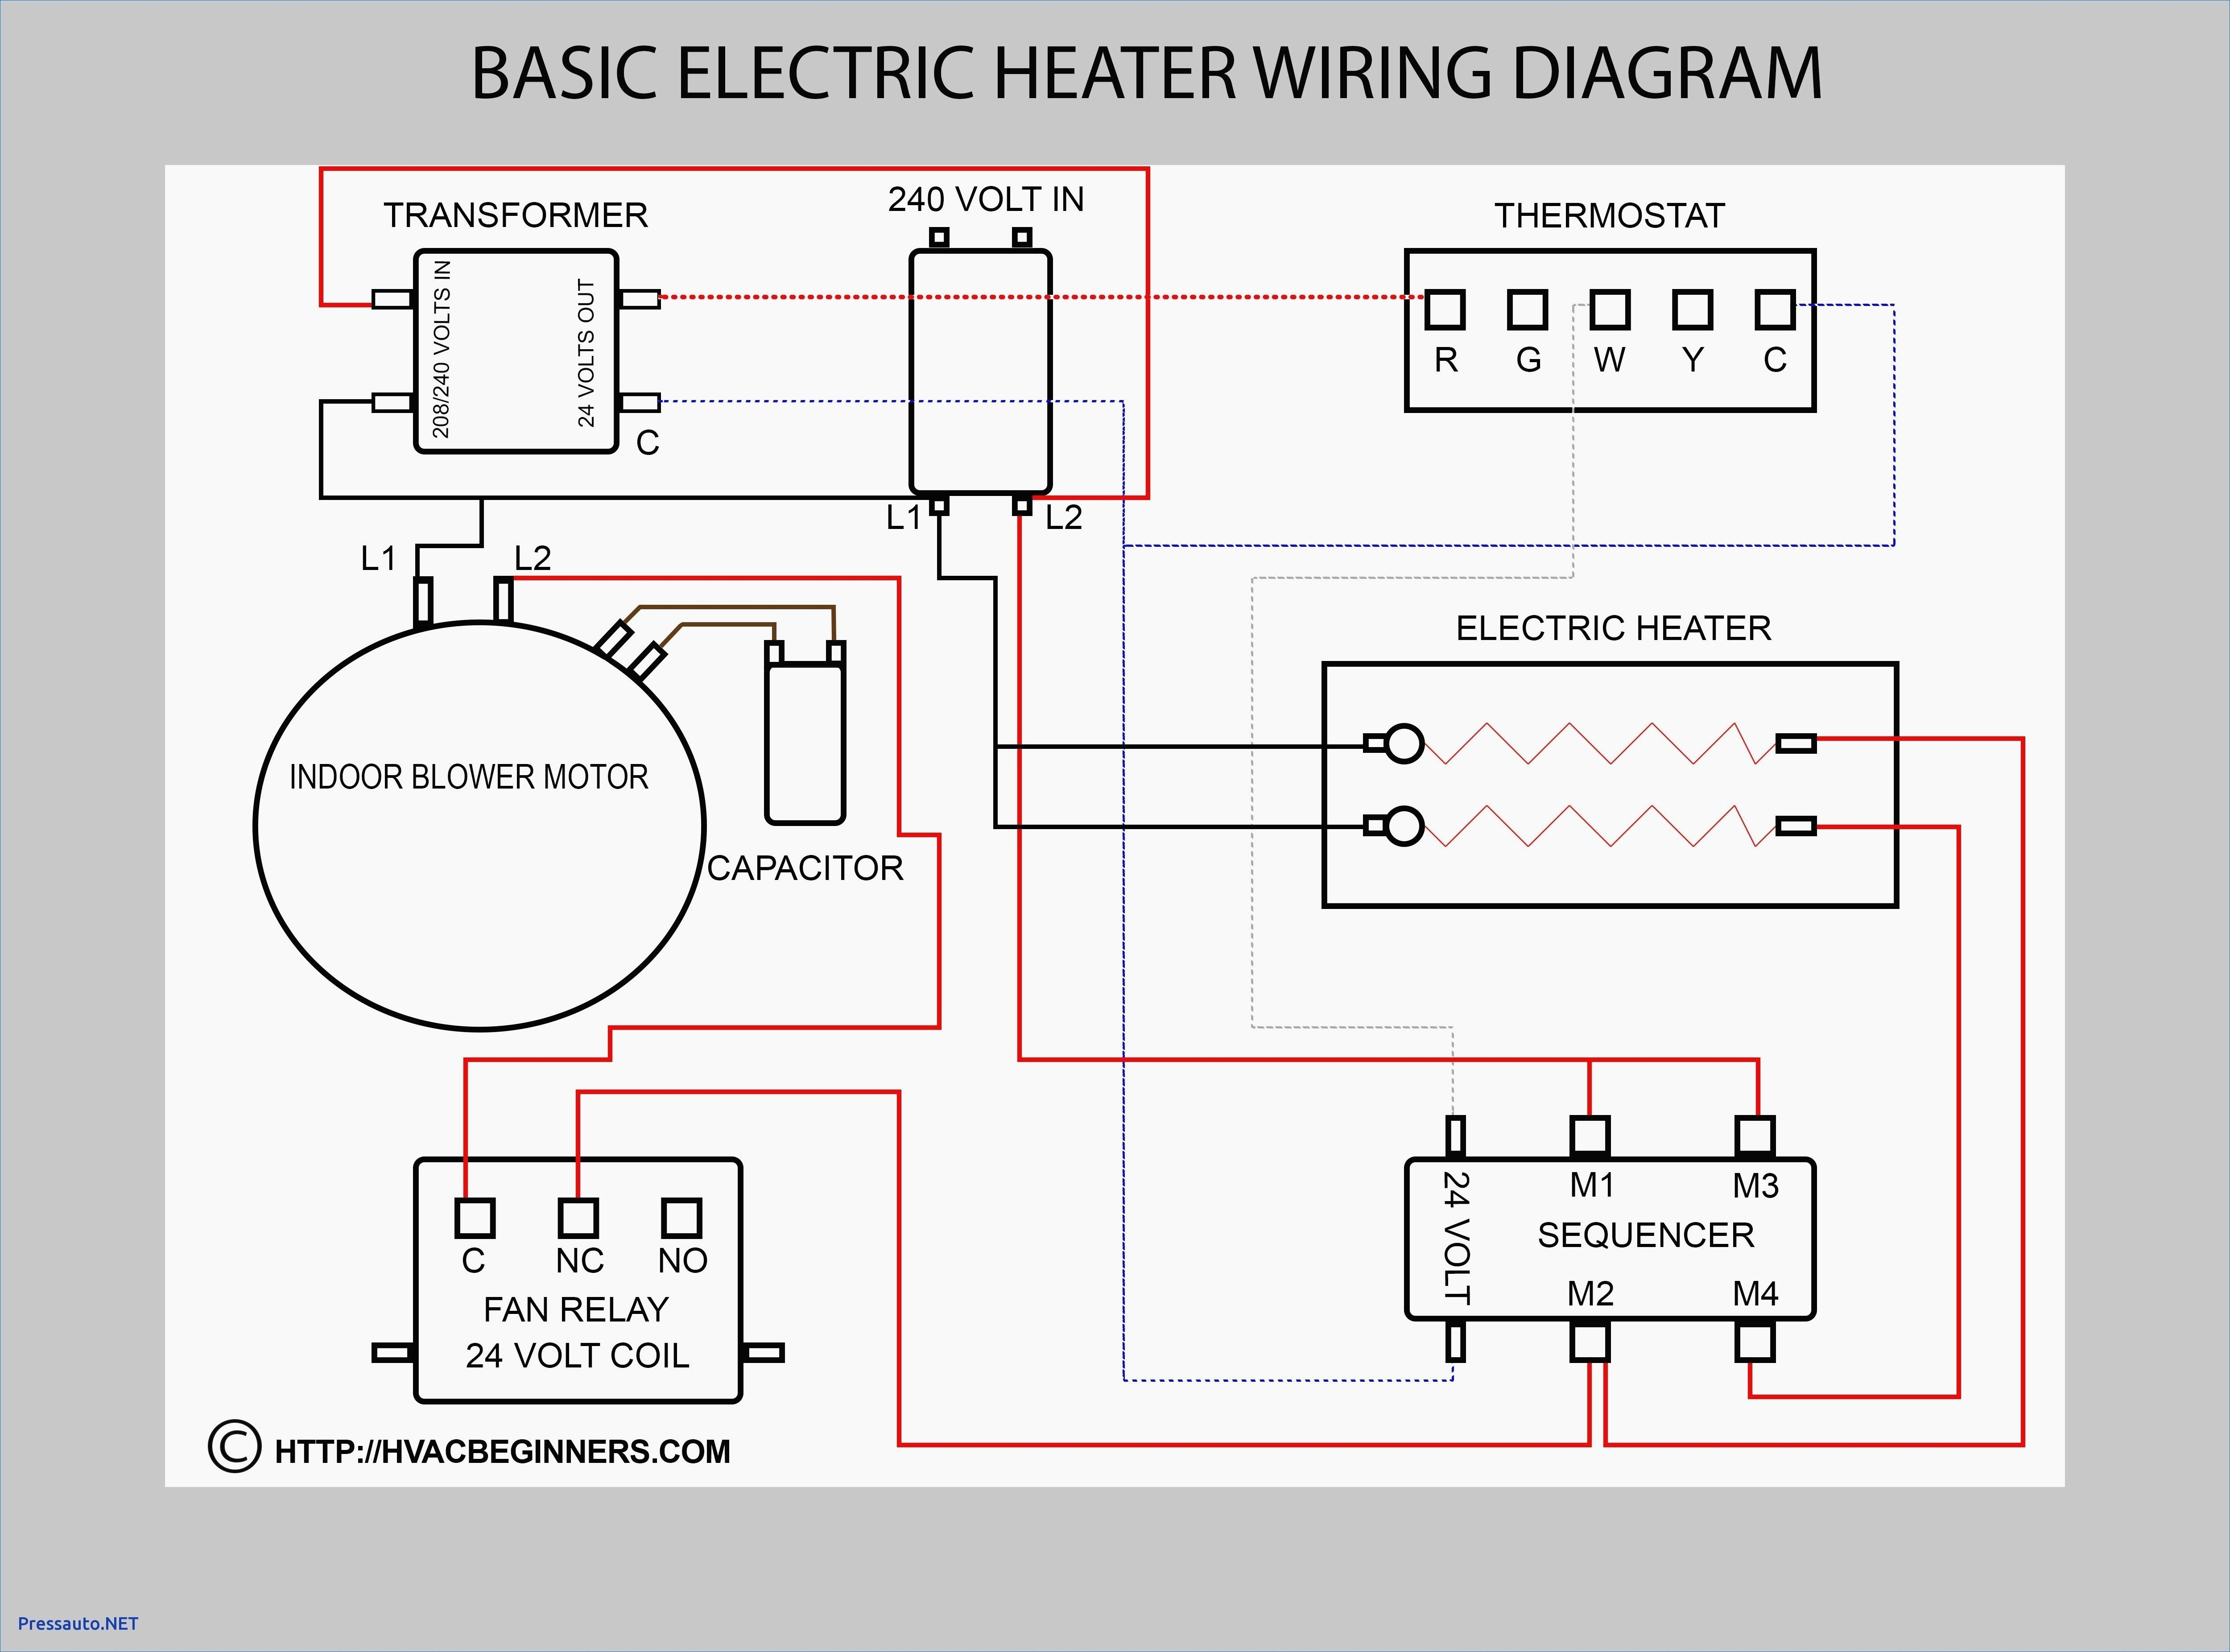 ac thermostat wire diagram unique wiring diagram ac blower motor electrical circuit diagram  unique wiring diagram ac blower motor